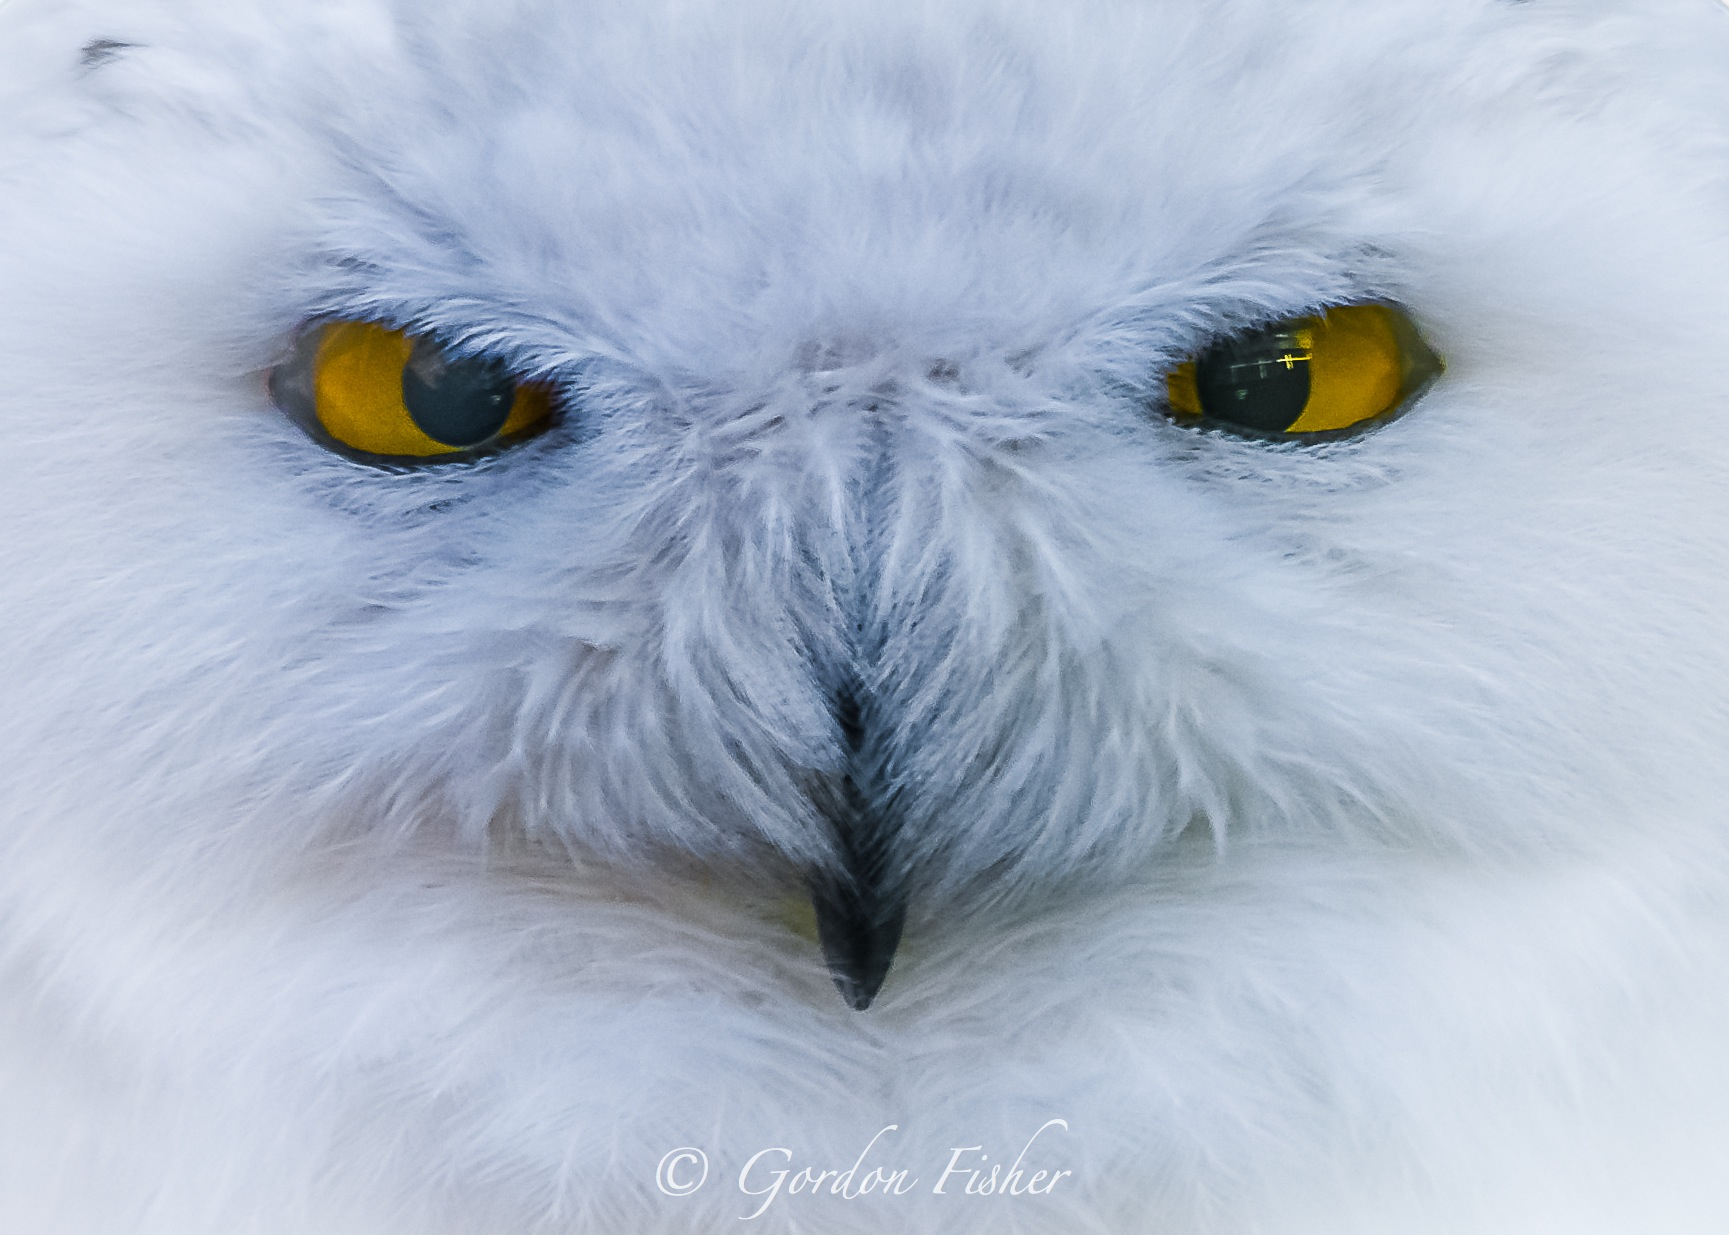 Sinister Snowy Stare